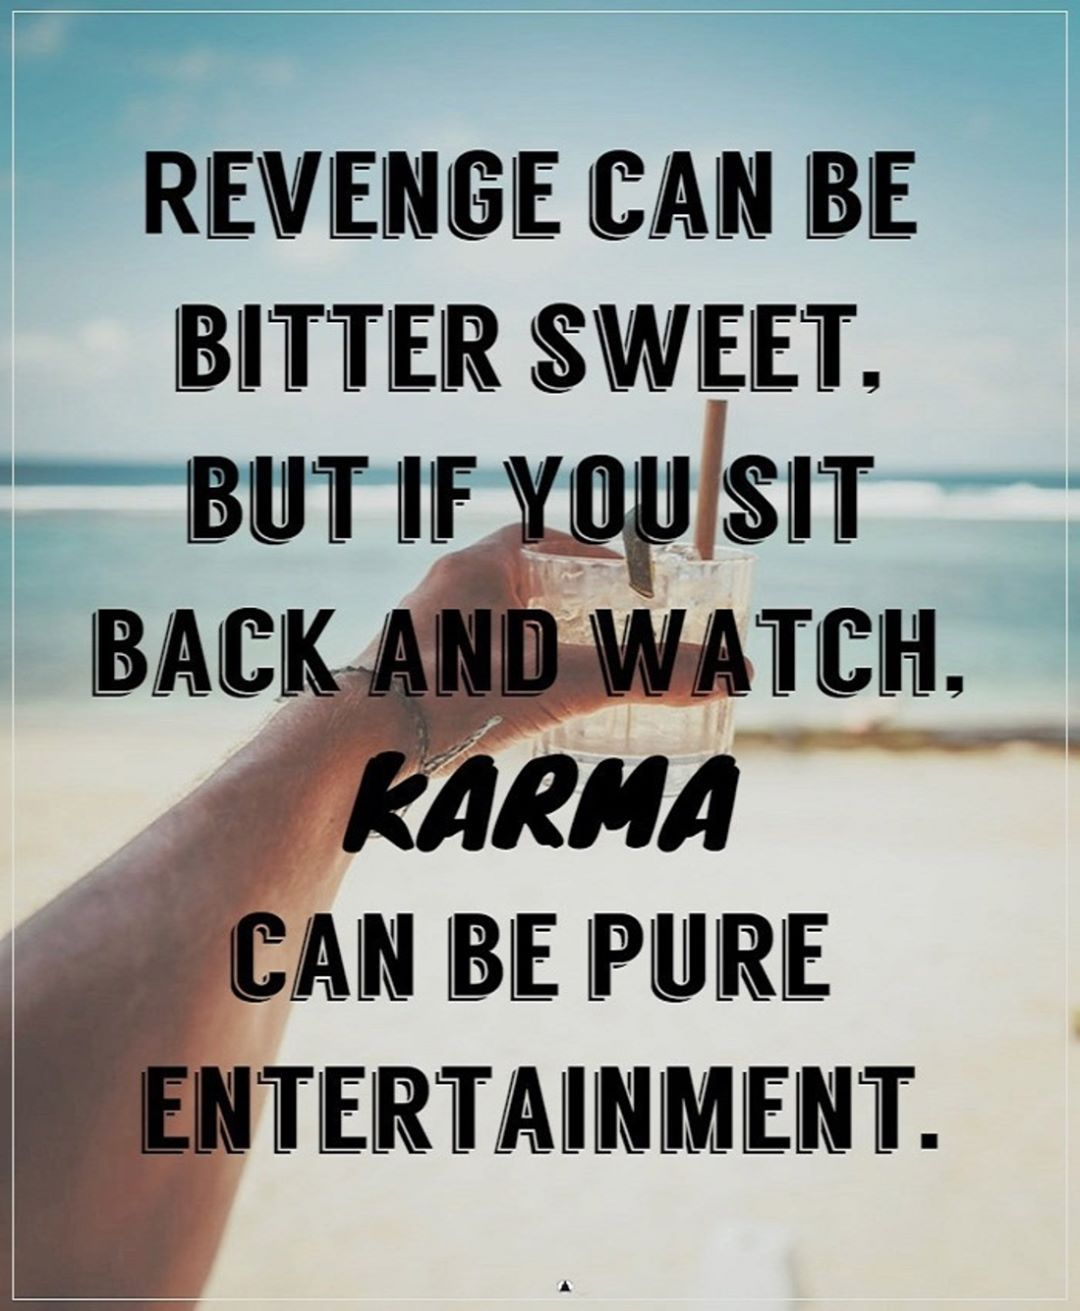 Revenge Can Be Bitter Sweet But If You Sit Back And Watch Karma Can Be Pure Entertainment Thepowerofsilence Inspirationalquo Karma Quotes Quotations Karma